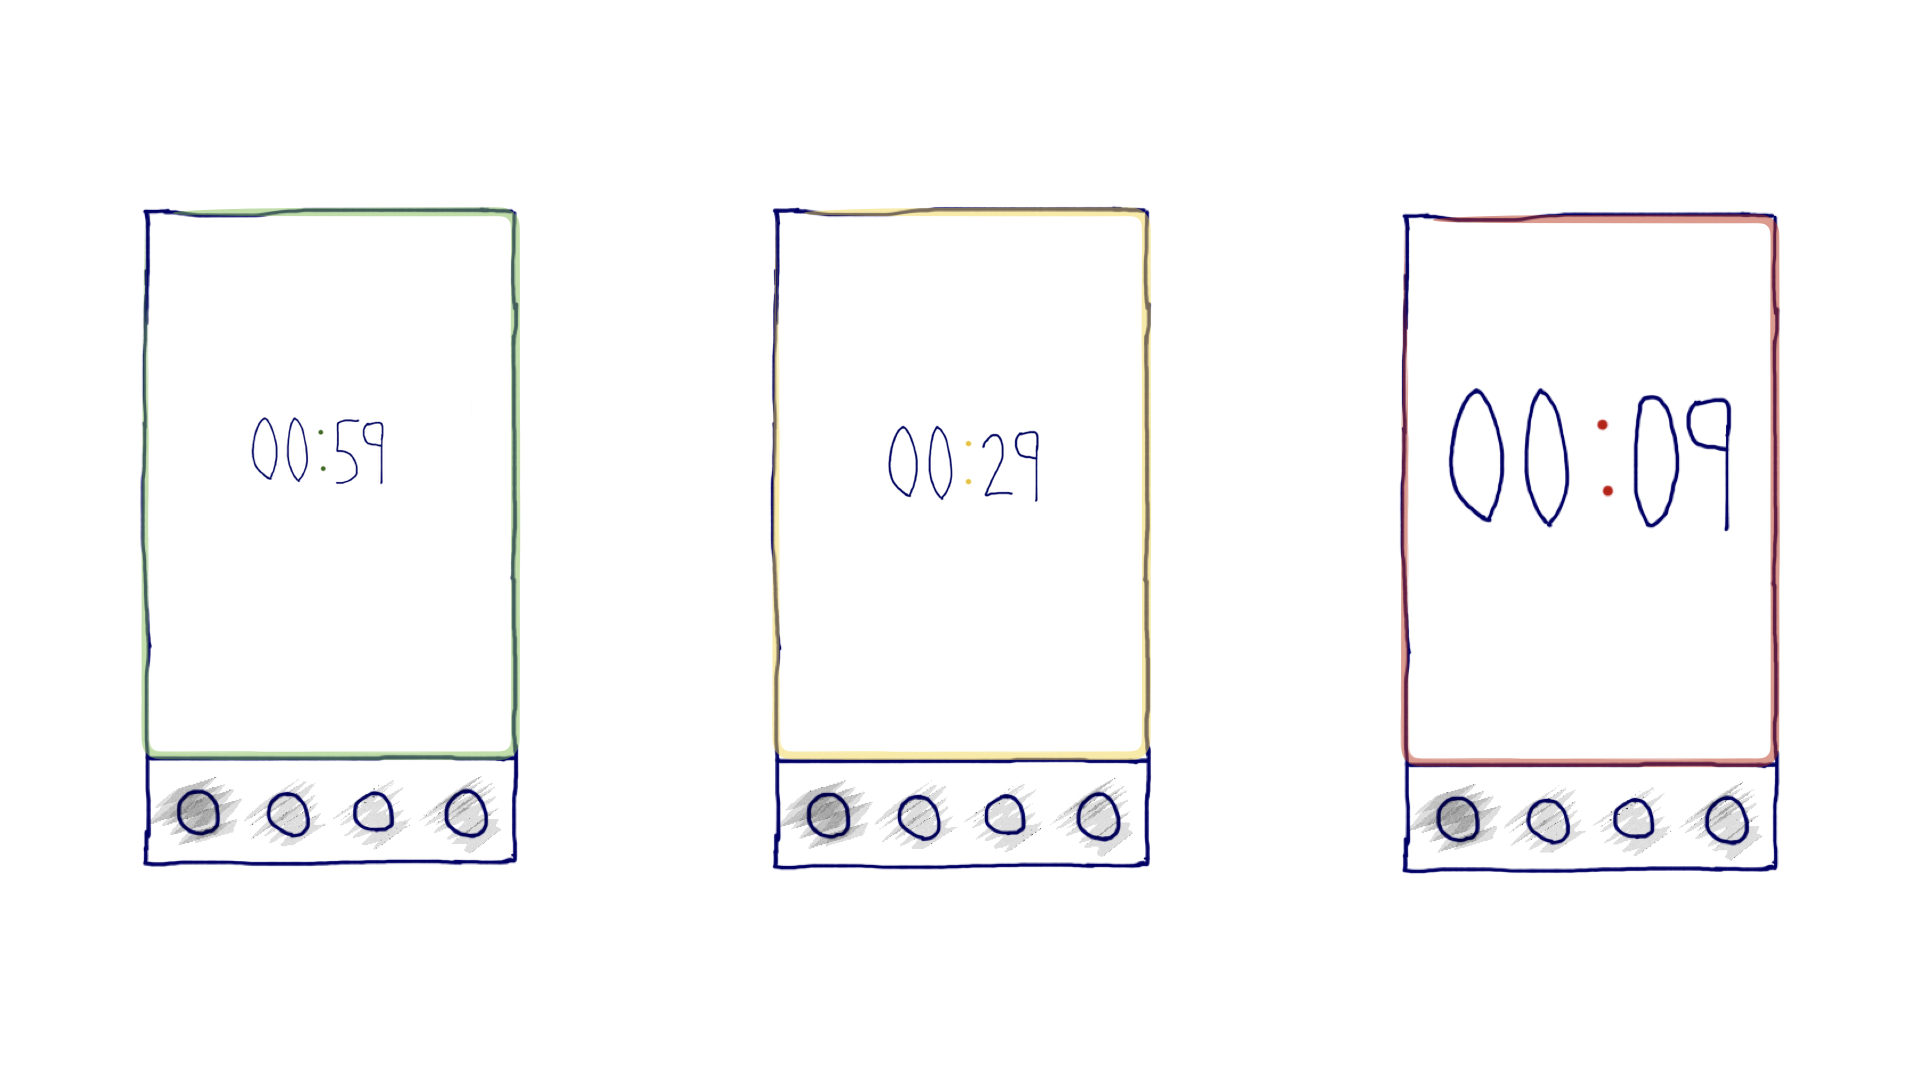 Ambient UI approach for a countdown timer